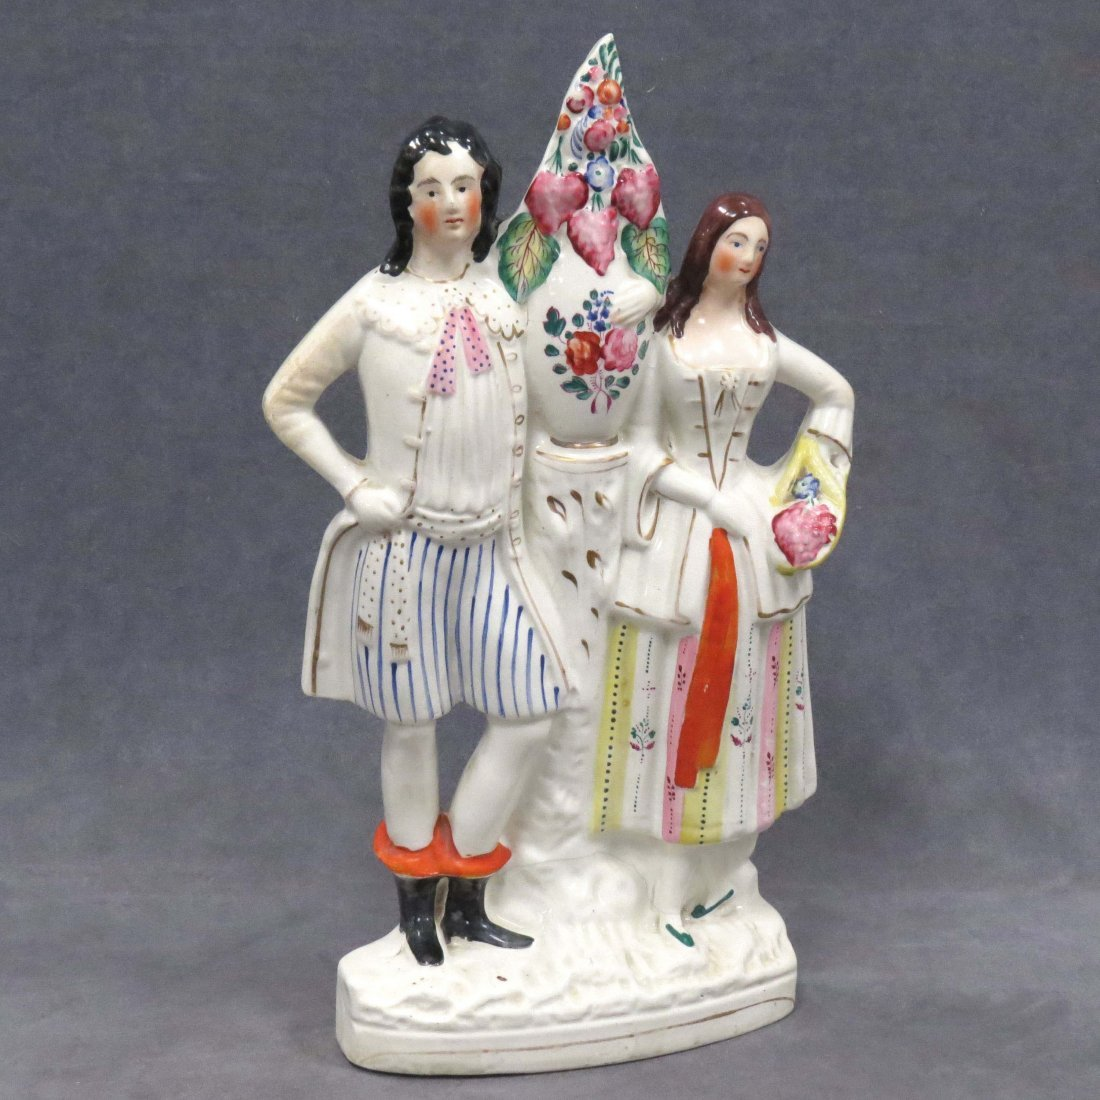 STAFFORDSHIRE POTTERY FIGURAL GROUP, 19TH CENTURY